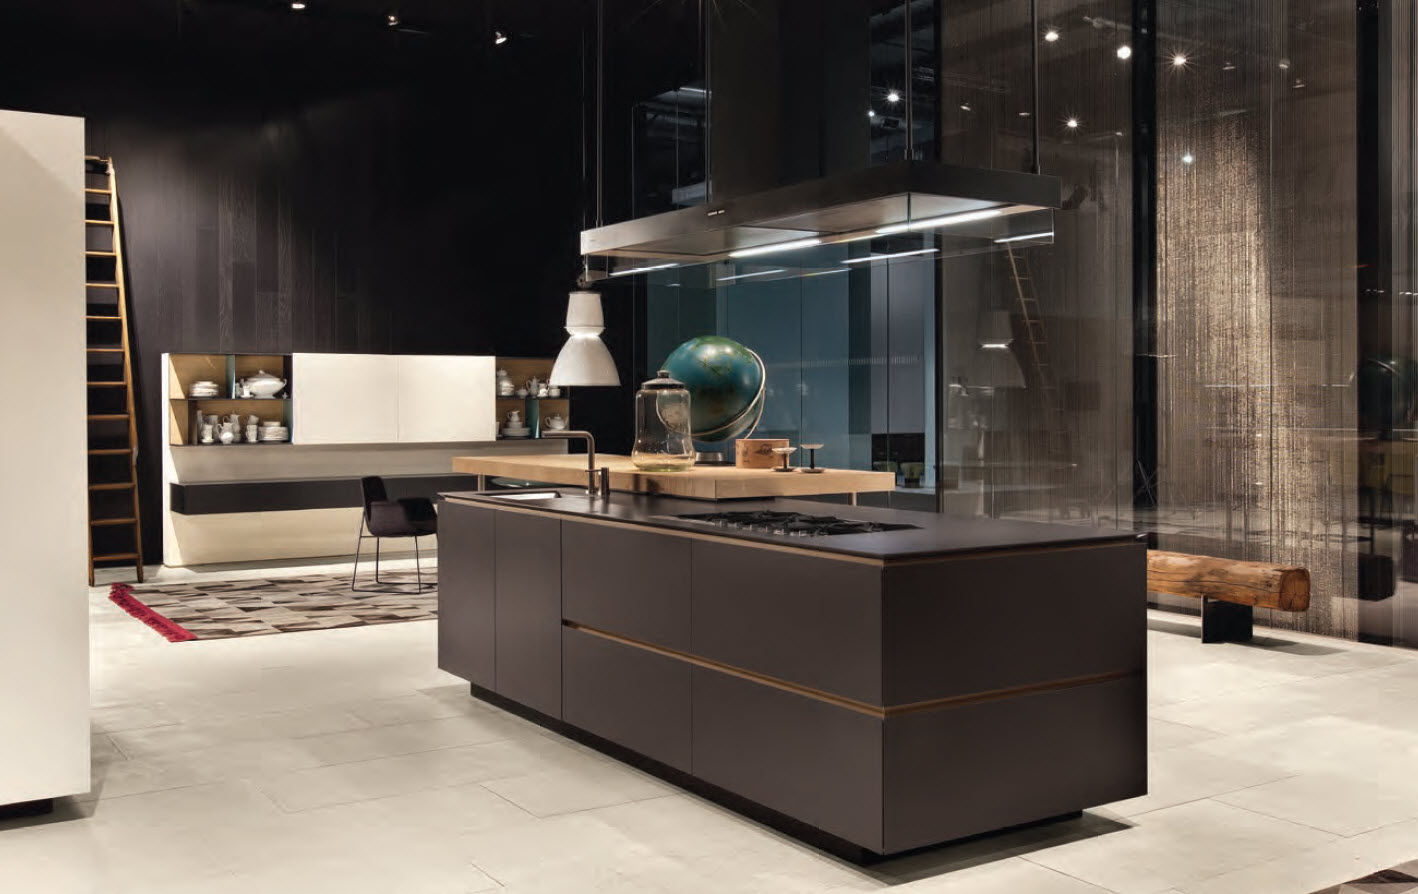 Bulthaup Cucine Prezzi. Excellent Bulthaup B Cucina A Isola With ...